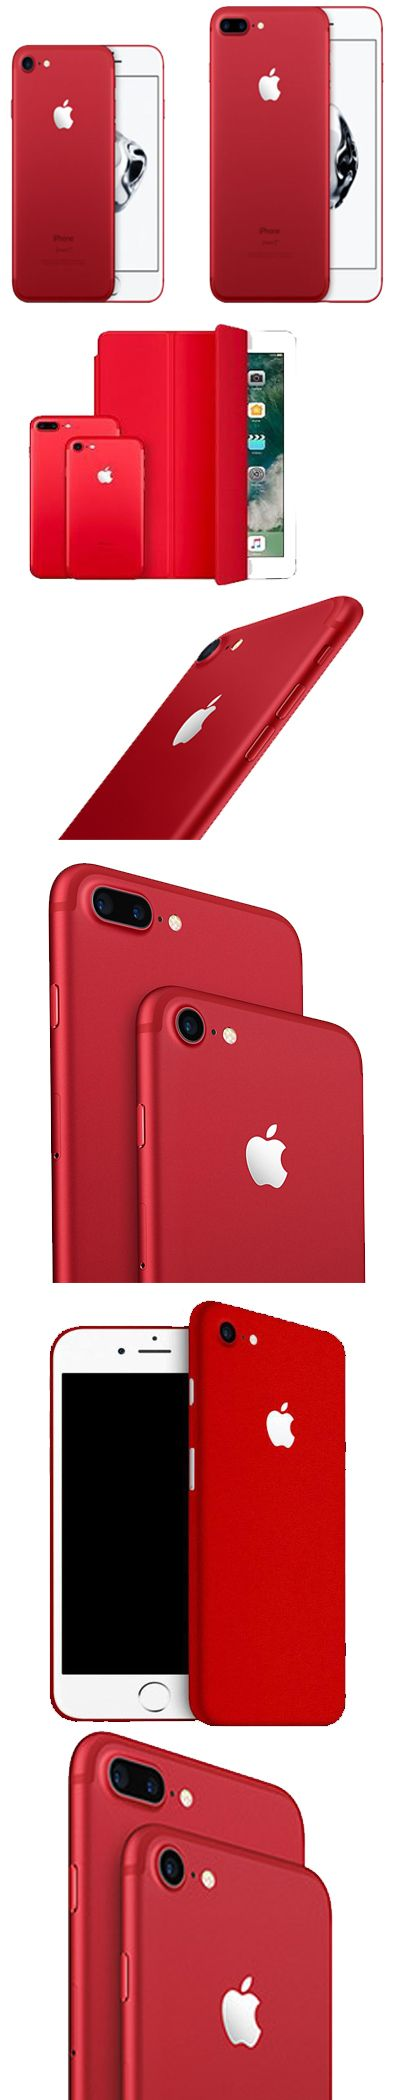 Apple is releasing a special-edition version of its iPhone 7 and iPhone 7 Plus red